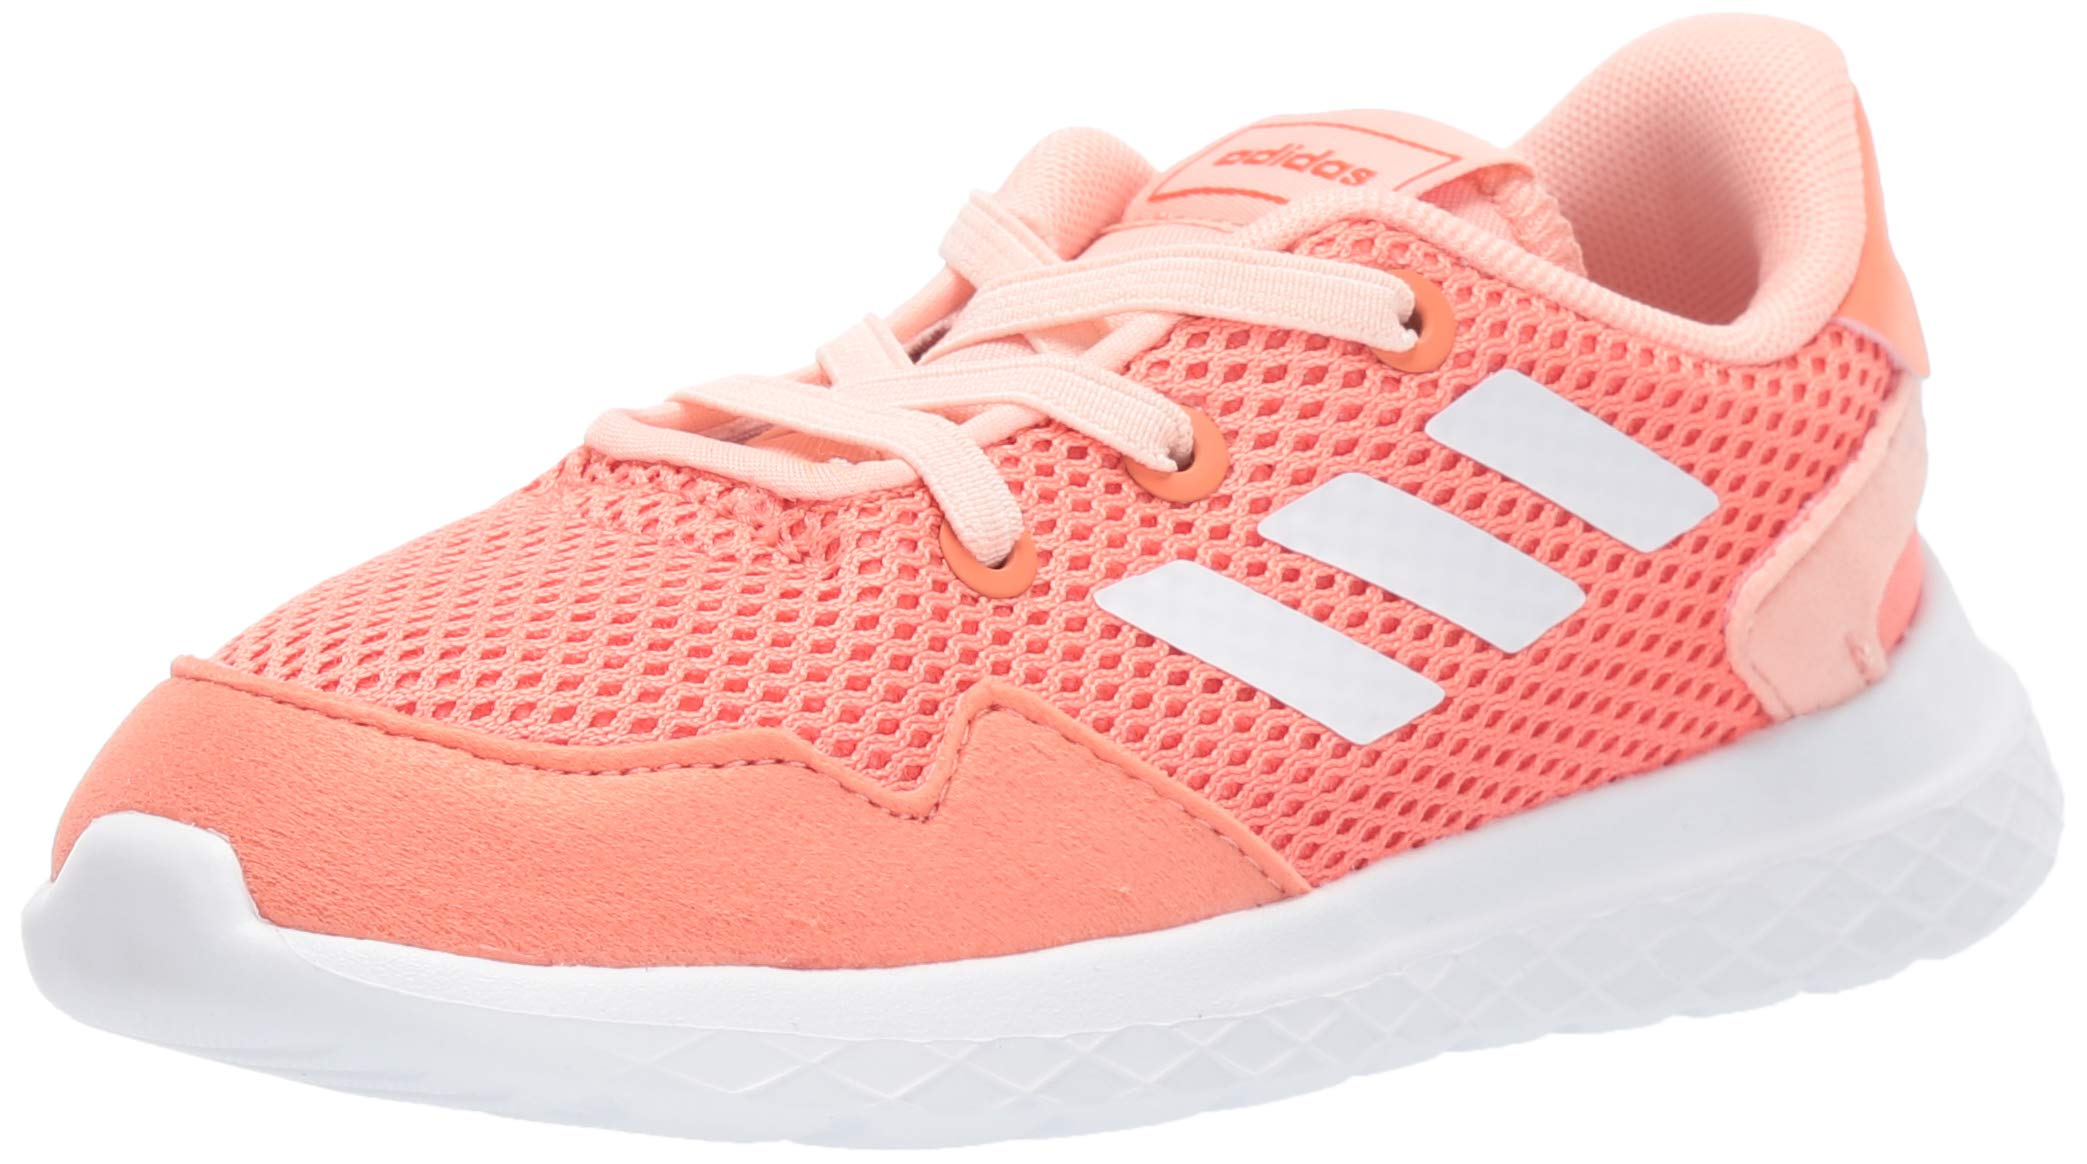 adidas Baby Archivo Sneaker, Semi Coral/White/Glow Pink, 9K M US Toddler by adidas